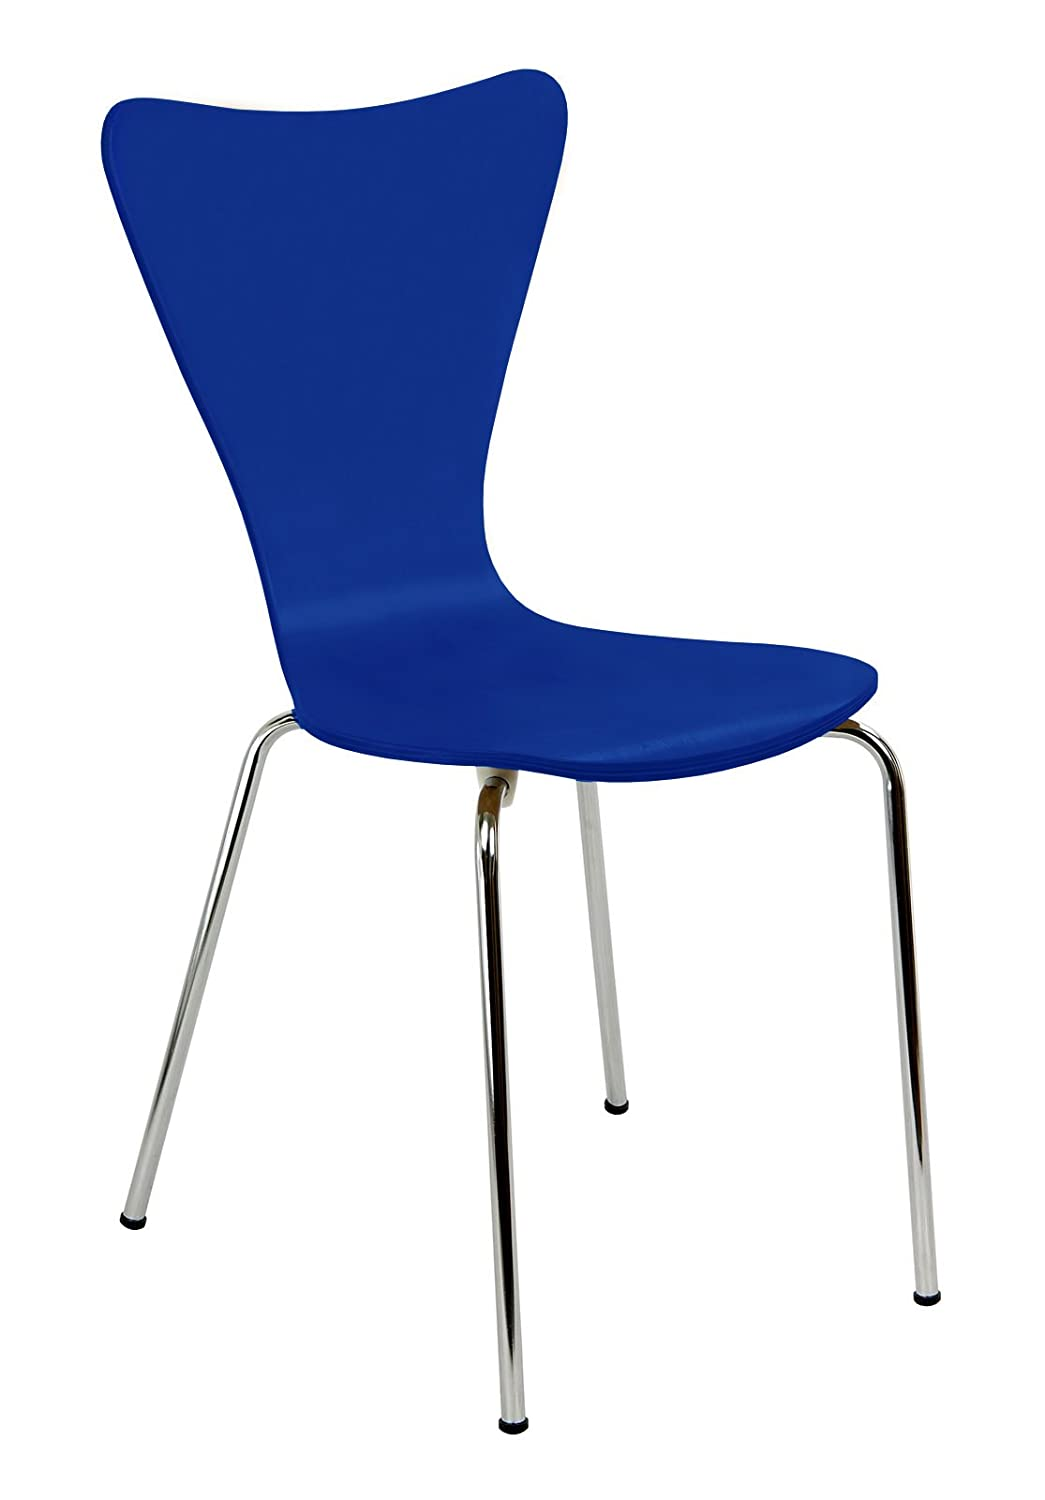 Legare Bent Plywood Chair, Blue